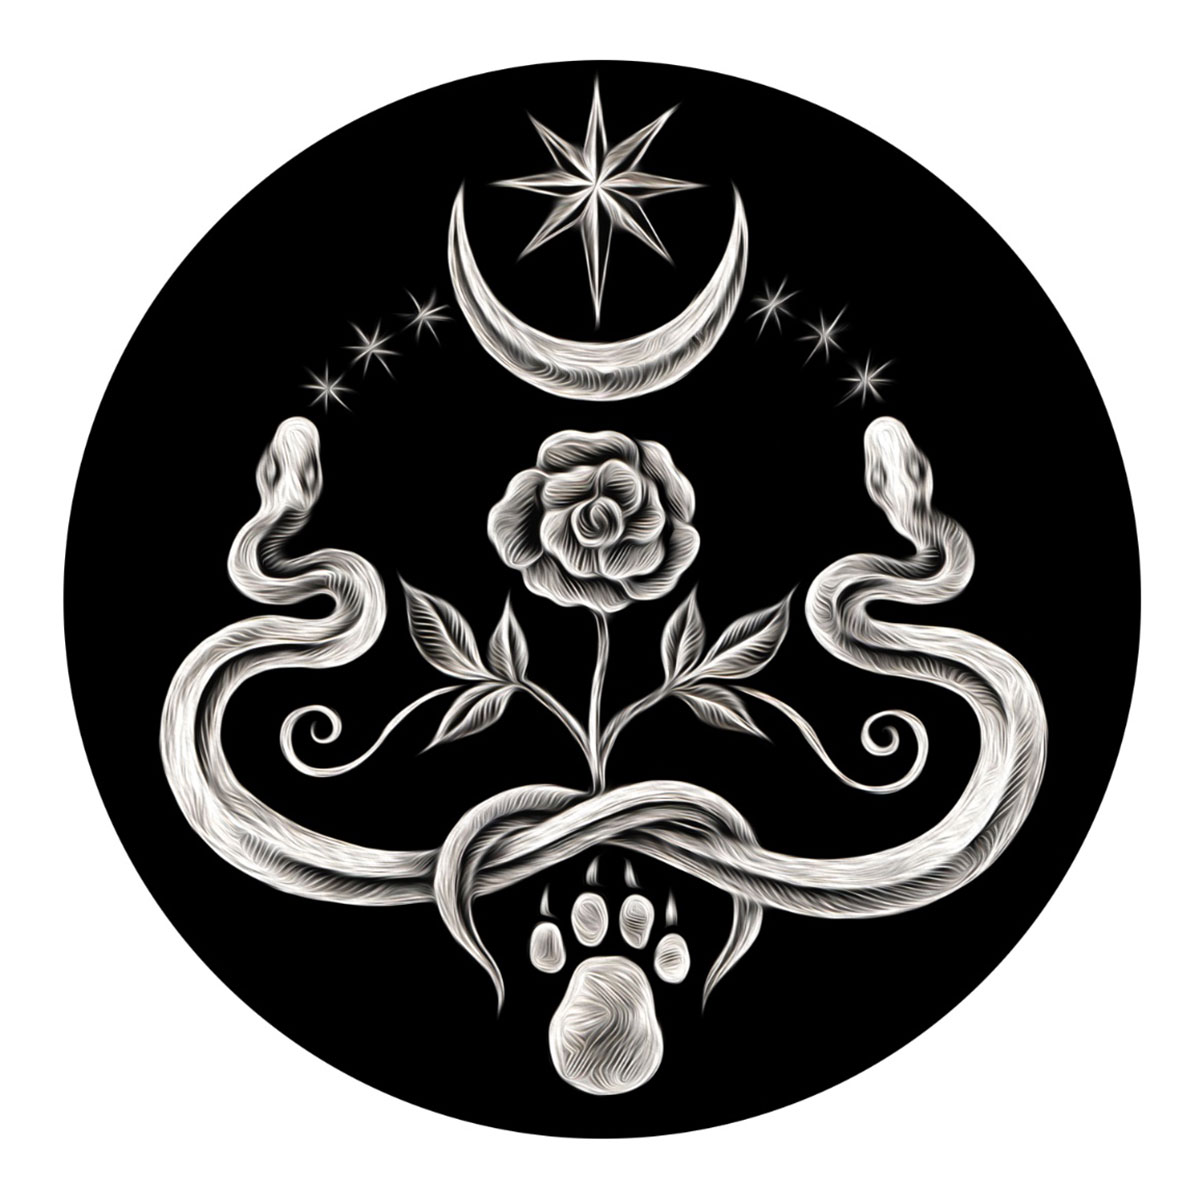 Forge and Fountain - Unique jewelry, apotropaic jewelry and charms, handforged offering bowls and spoons, tarot decks, art